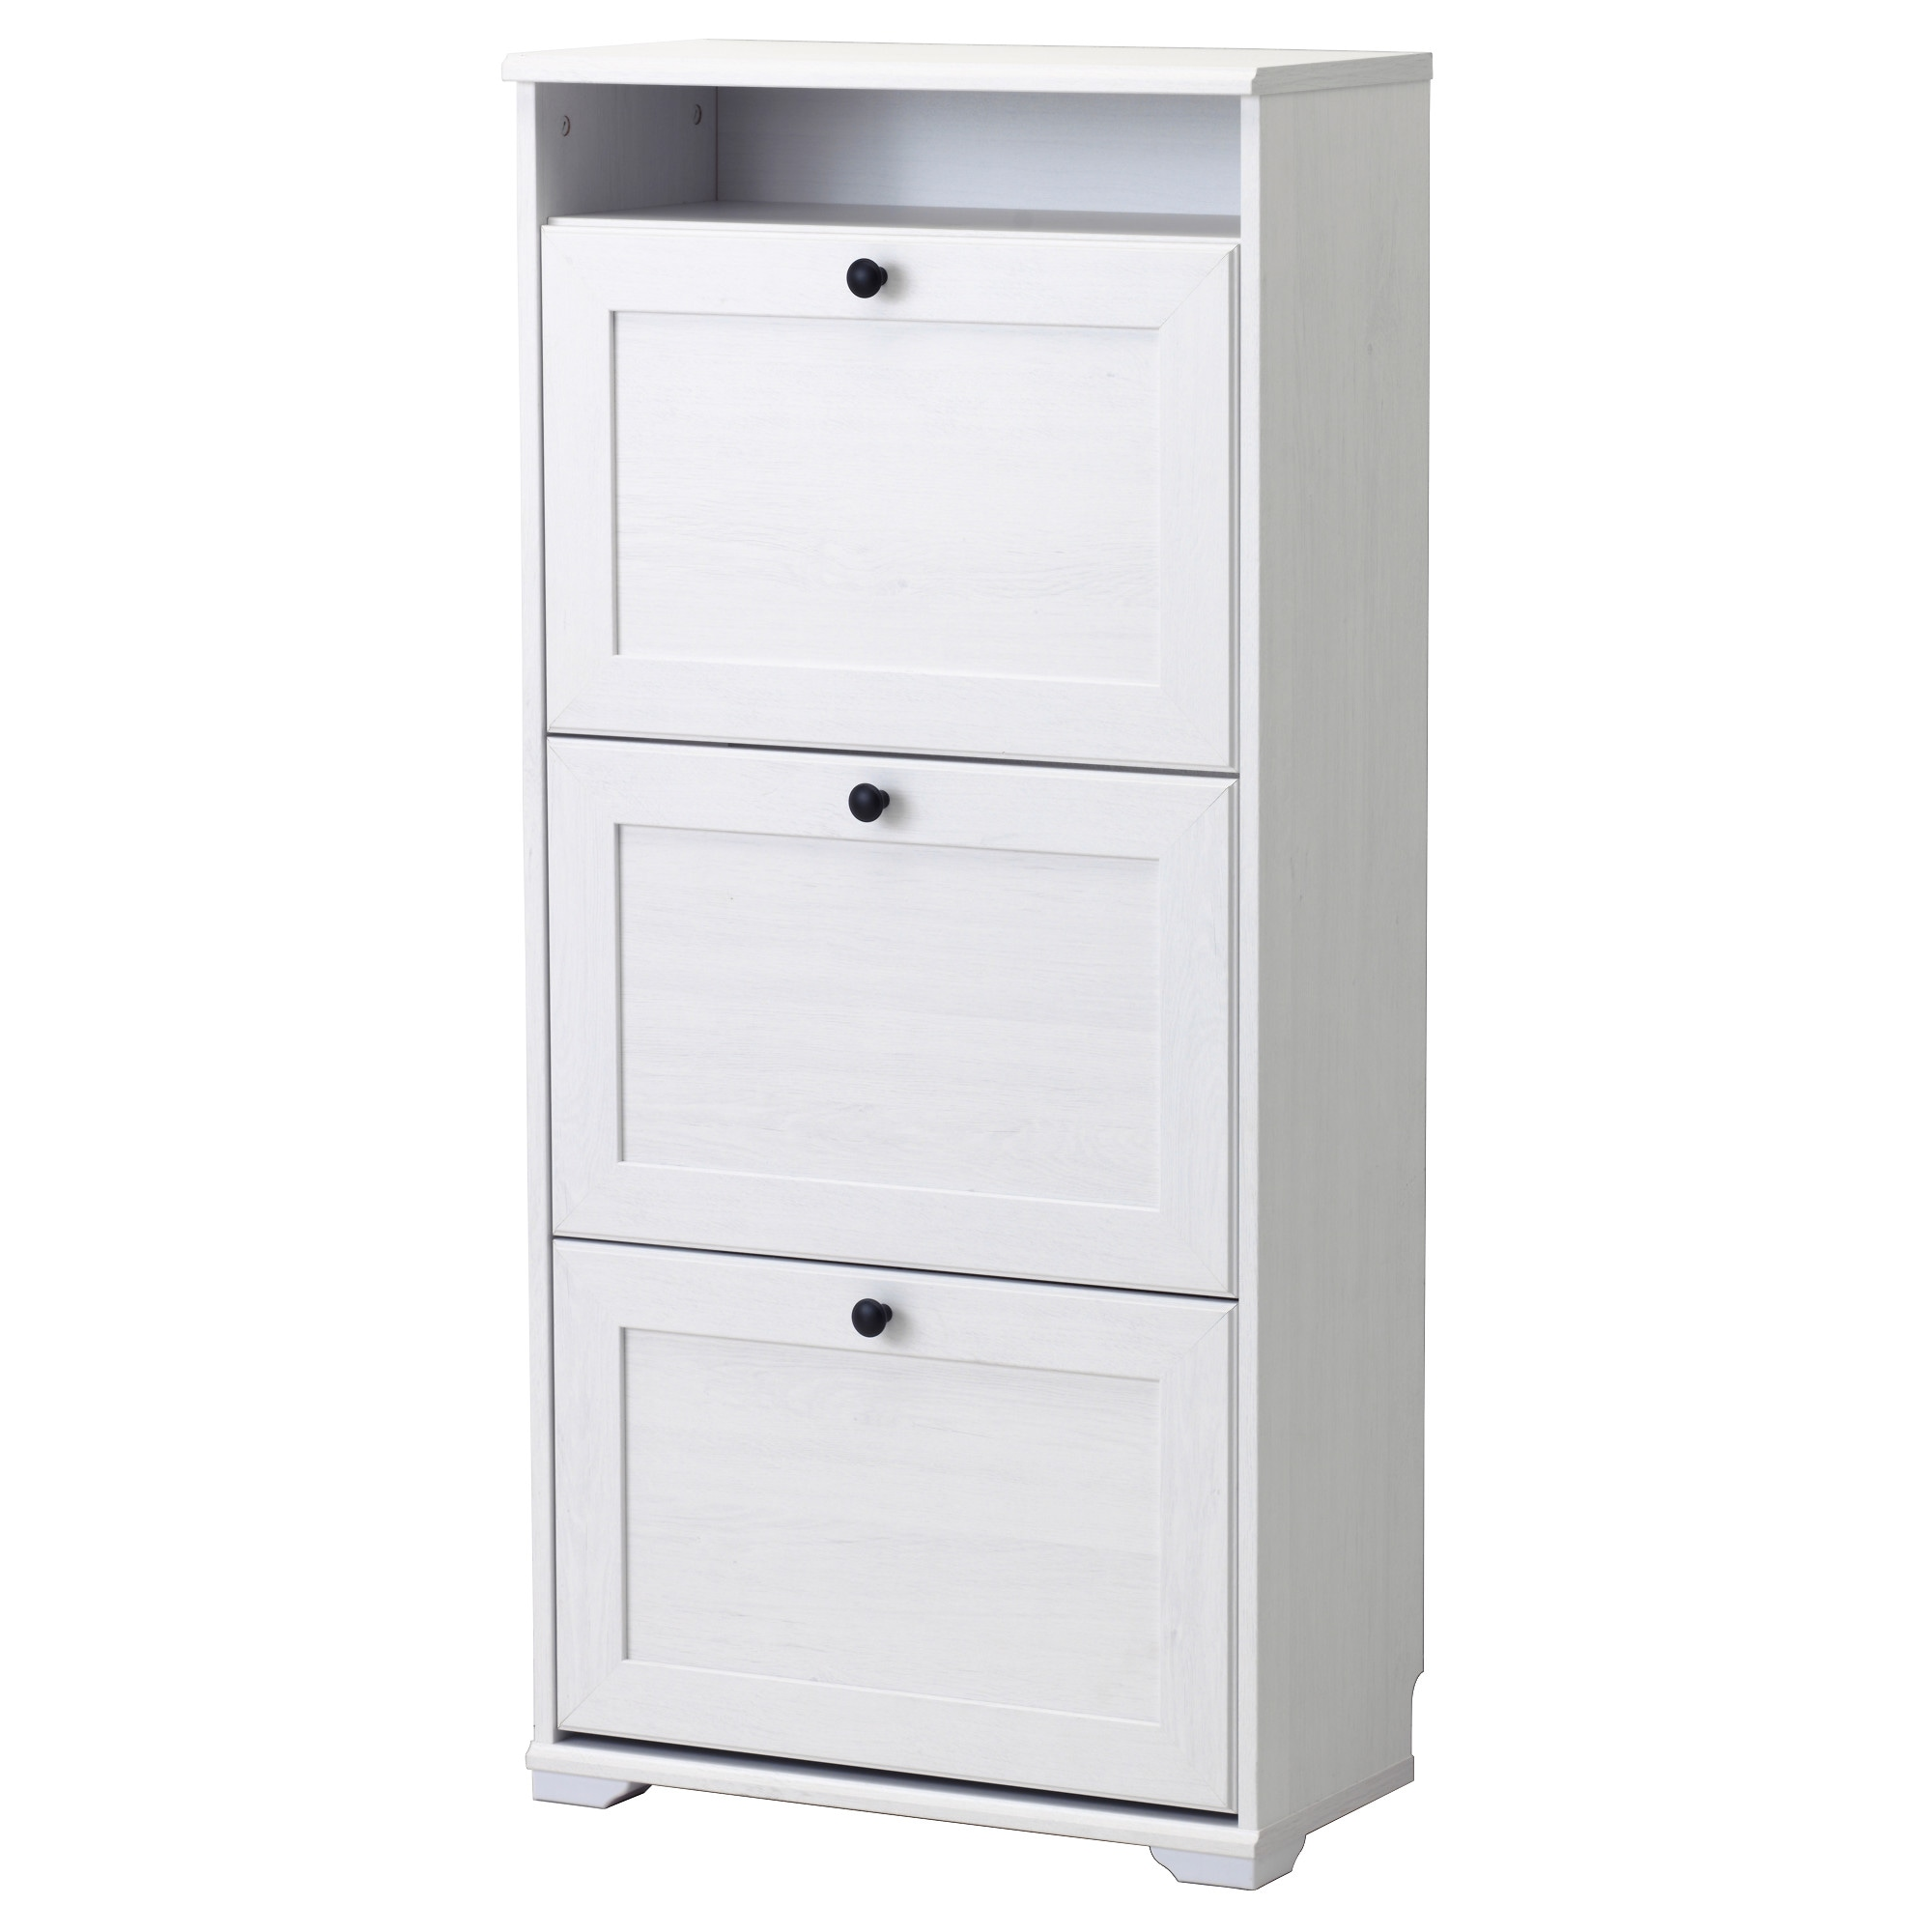 Attrayant BRUSALI Shoe Cabinet With 3 Compartments   IKEA